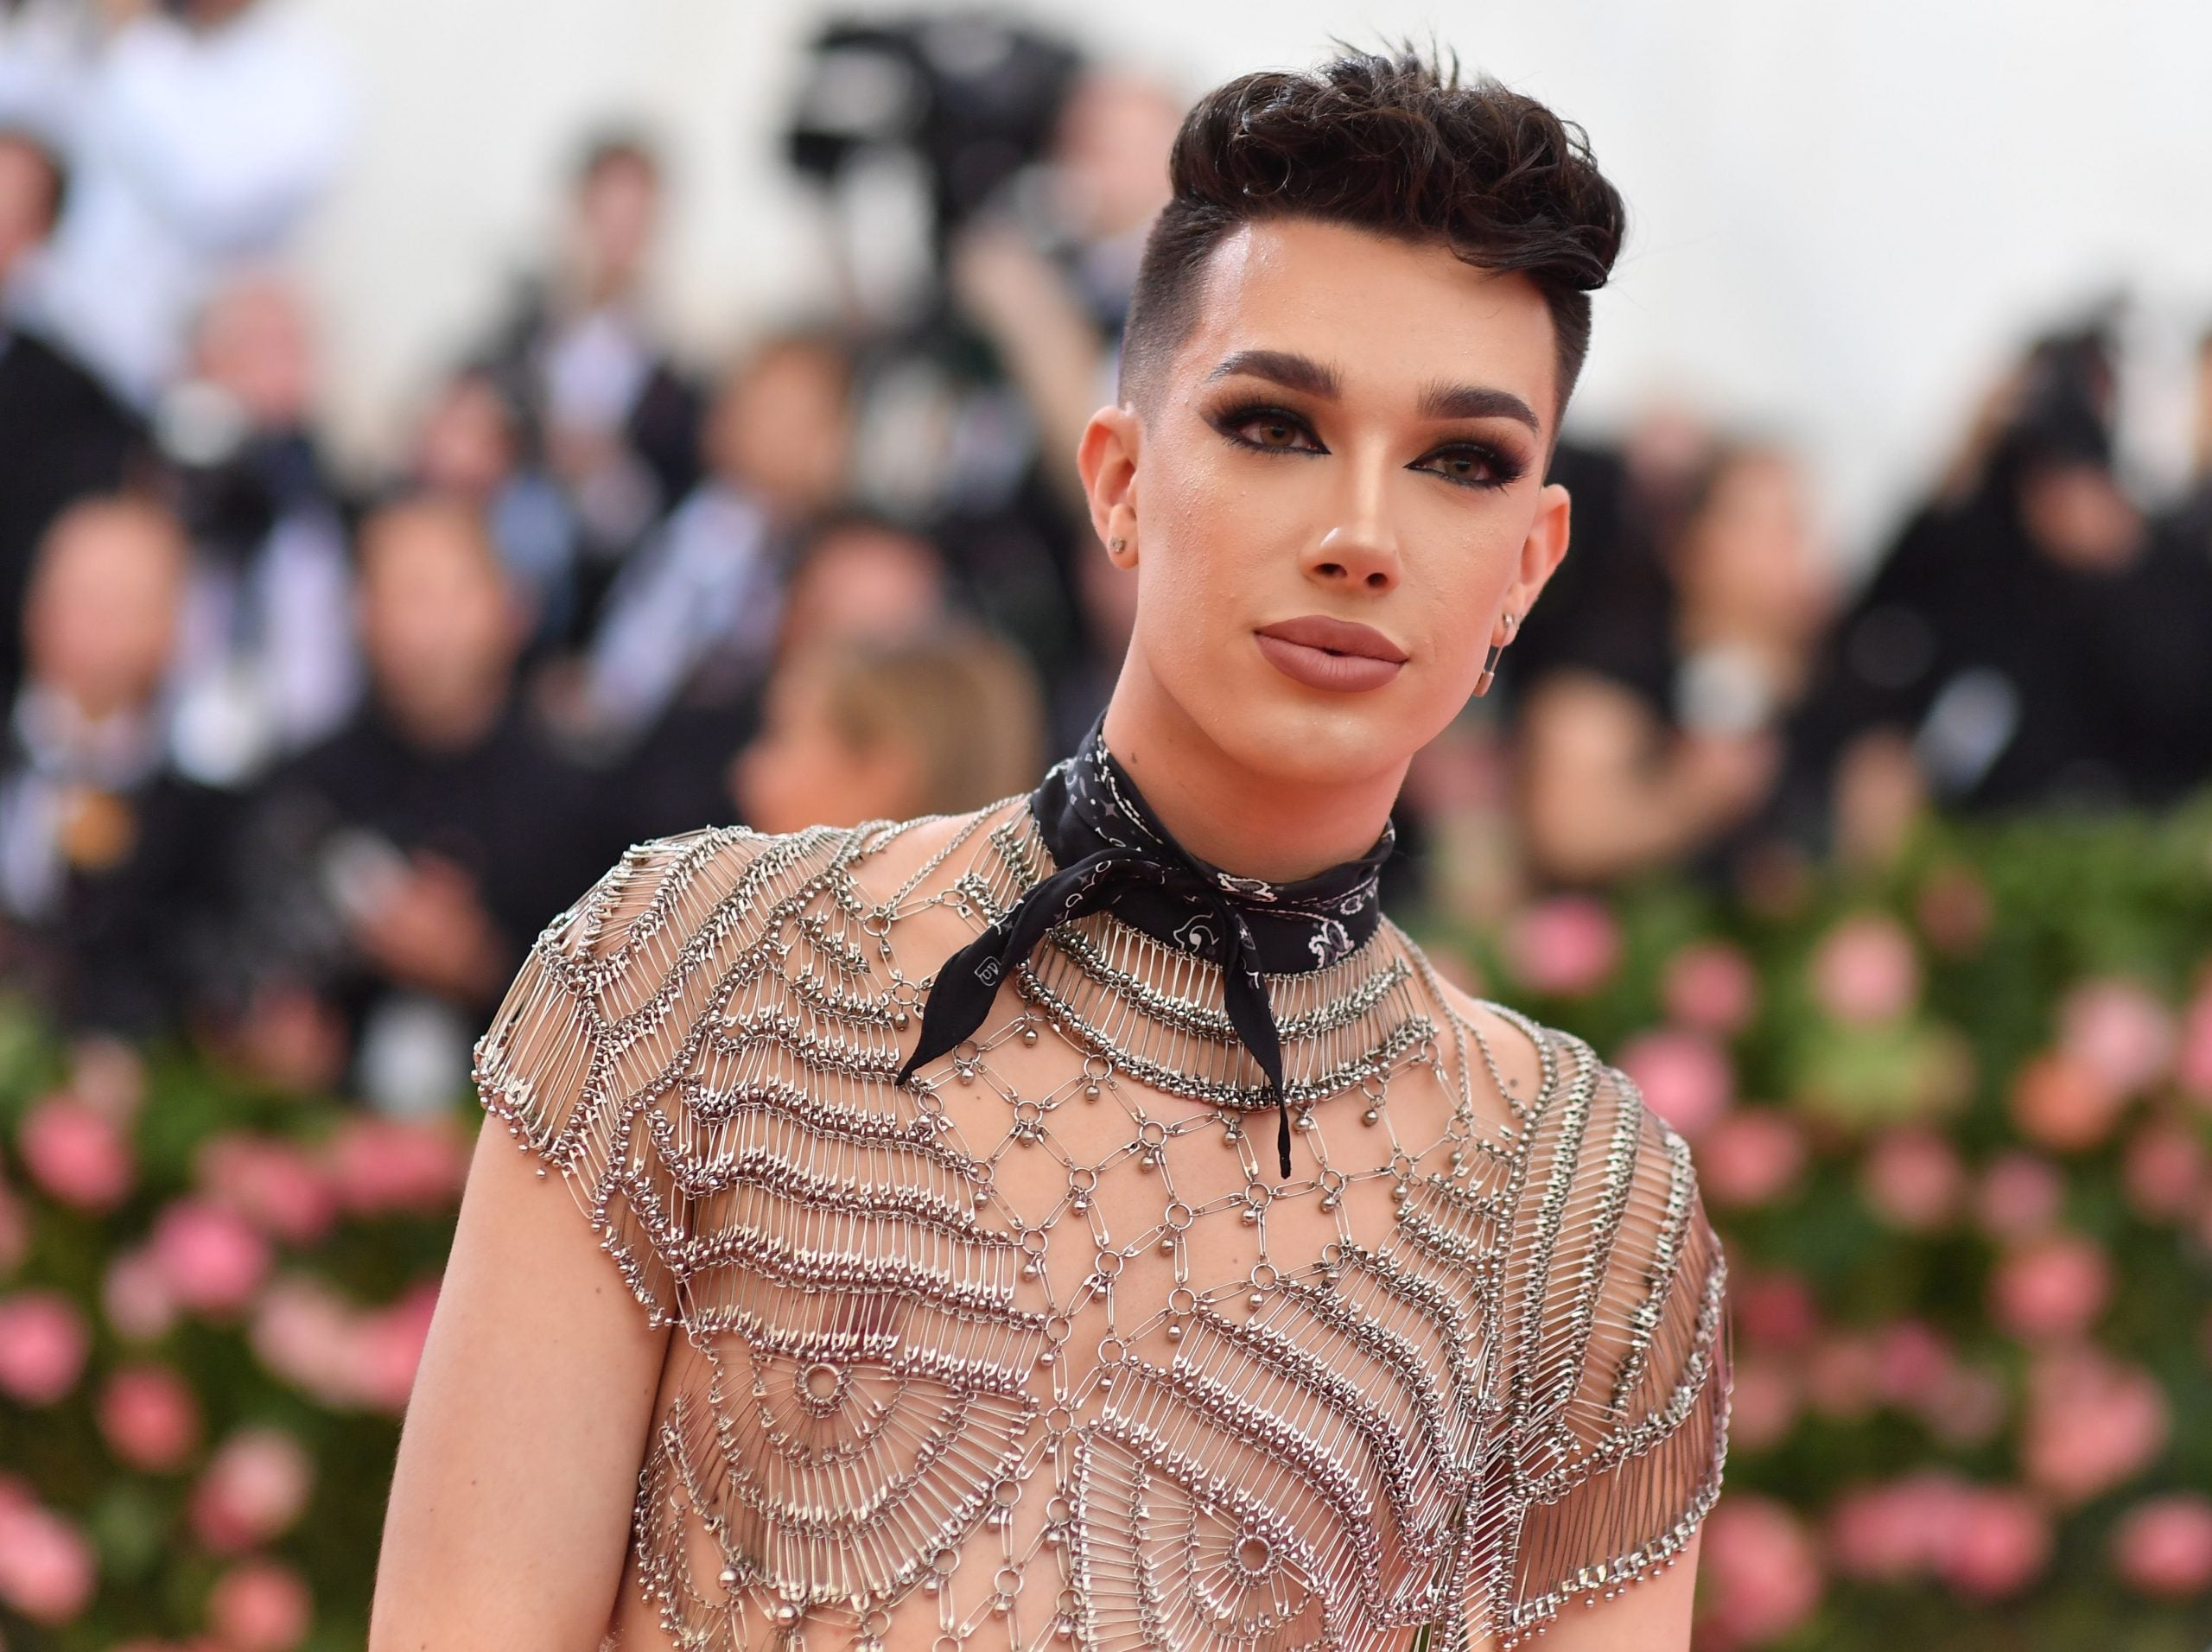 """James Charles, Tati Westbrook and the internet's insatiable appetite for """"tea"""""""